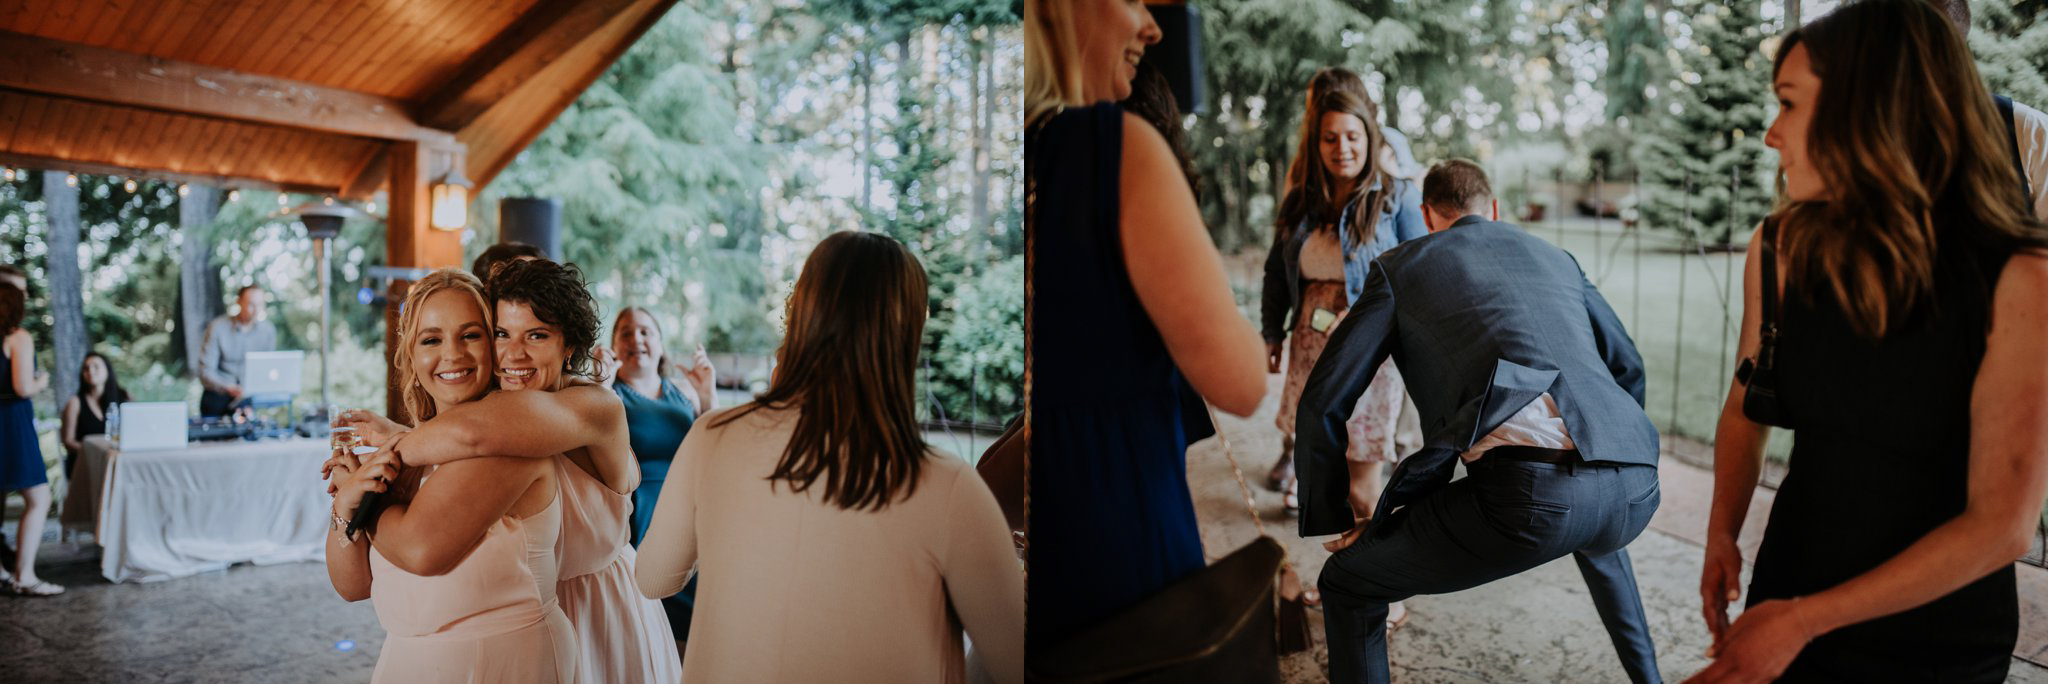 evergreen-gardens-bellingham-wedding-seattle-photographer-caitlyn-nikula-123.jpg